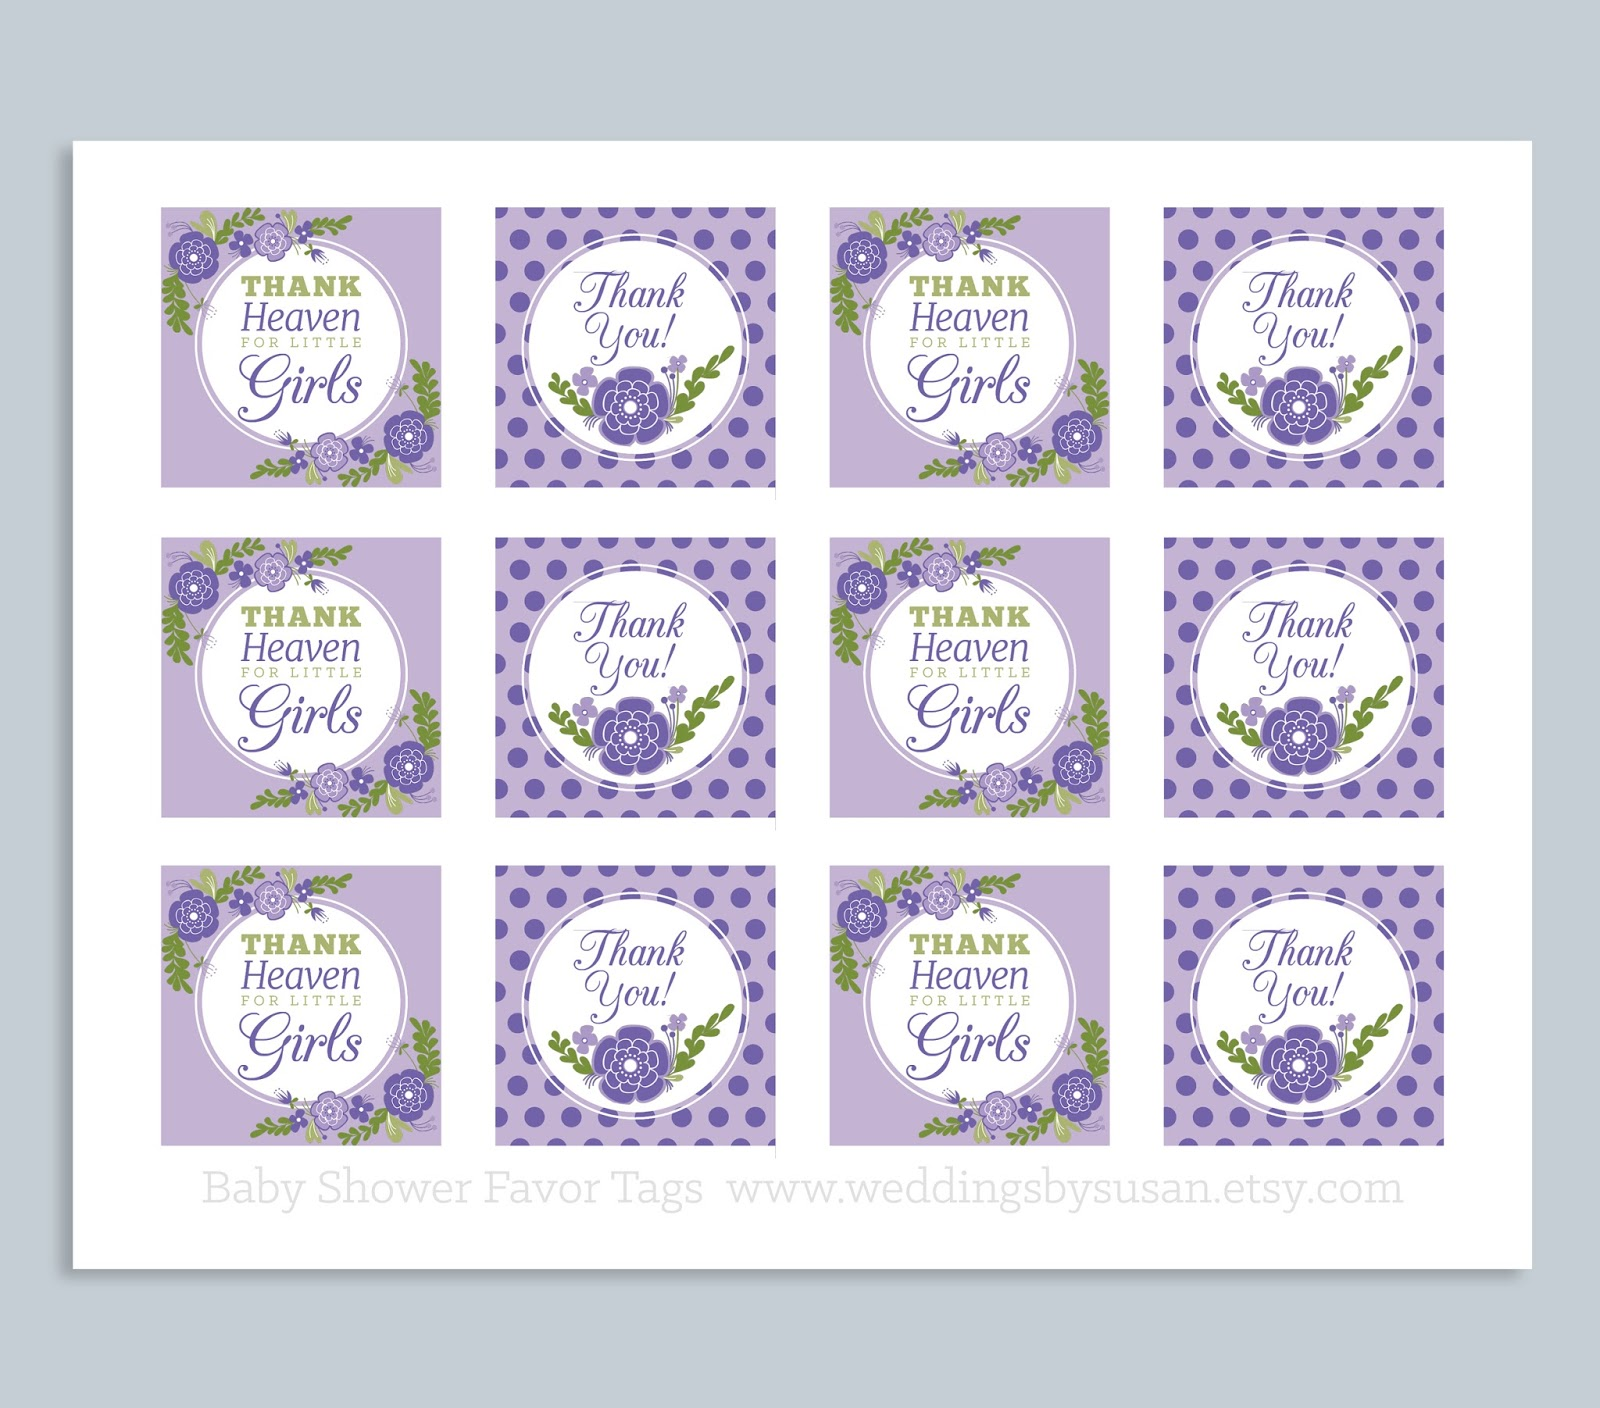 Weddings by Susan Printable Baby Shower Signs Games and Favor